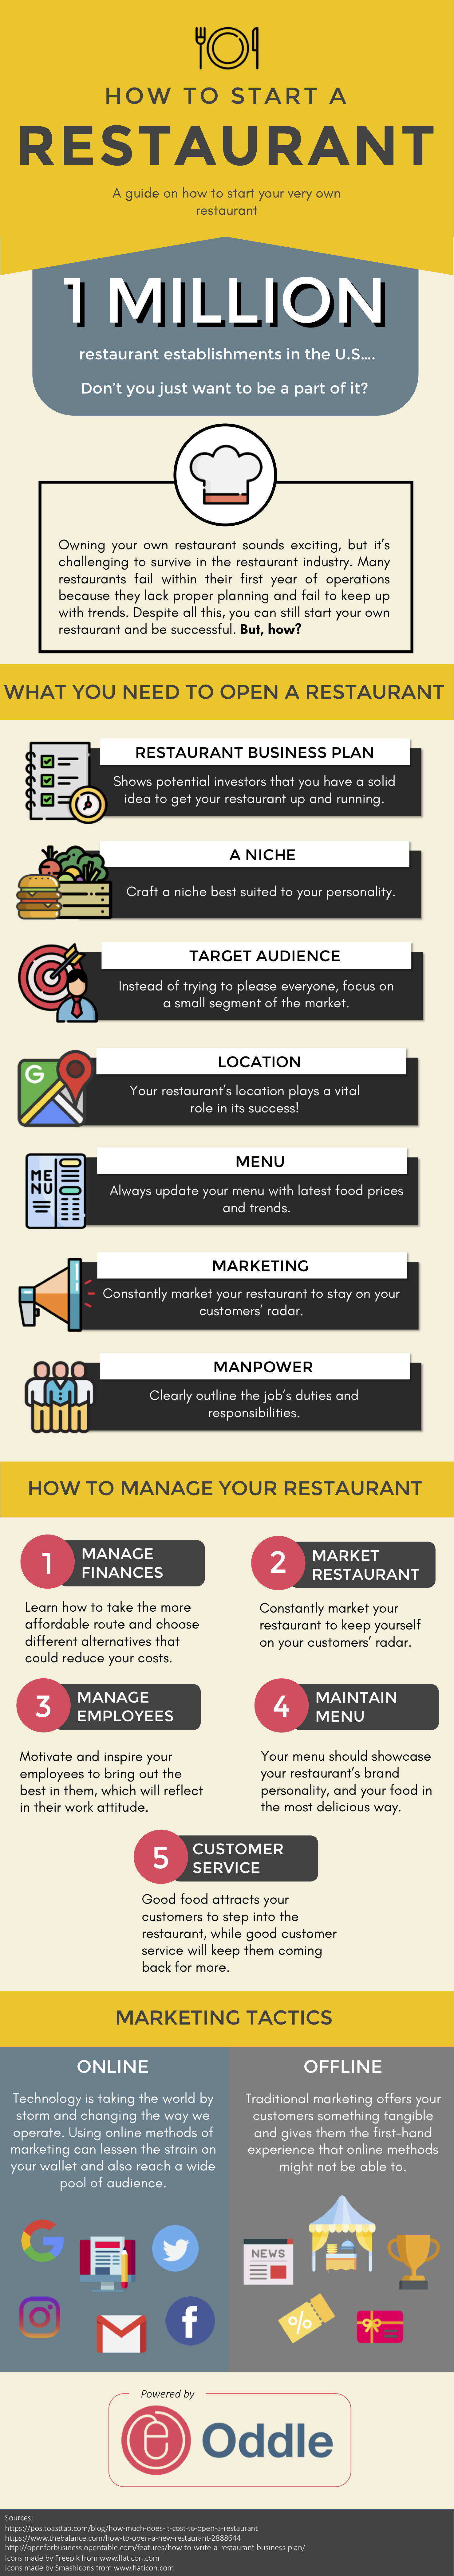 How To Start A Restaurant - The Ultimate Guide